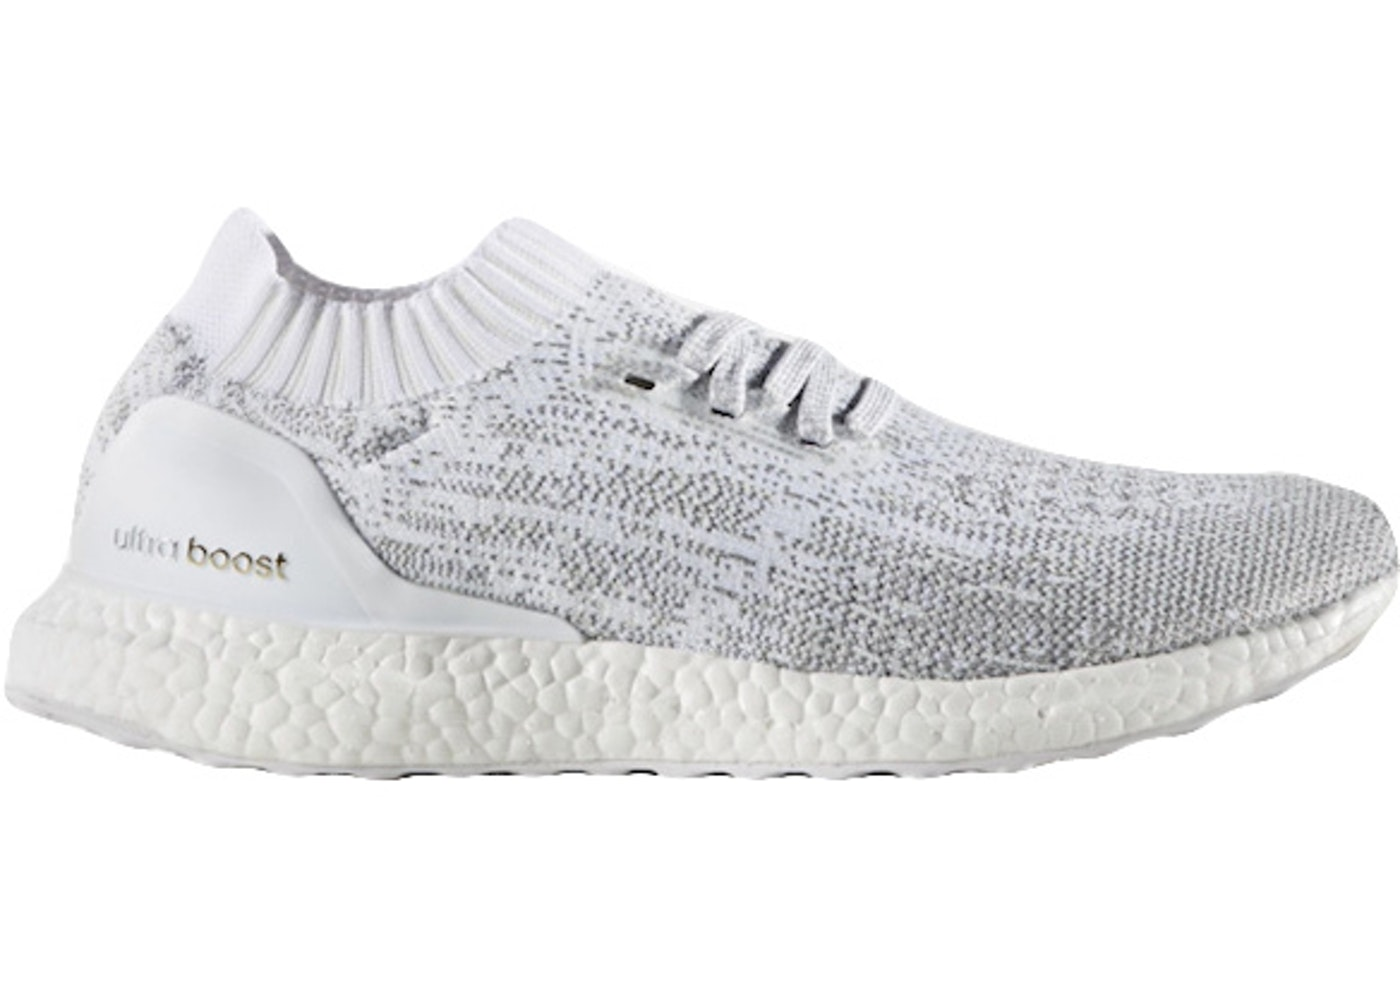 adidas Ultra Boost Uncaged Reflective White Size 10.5 LTD